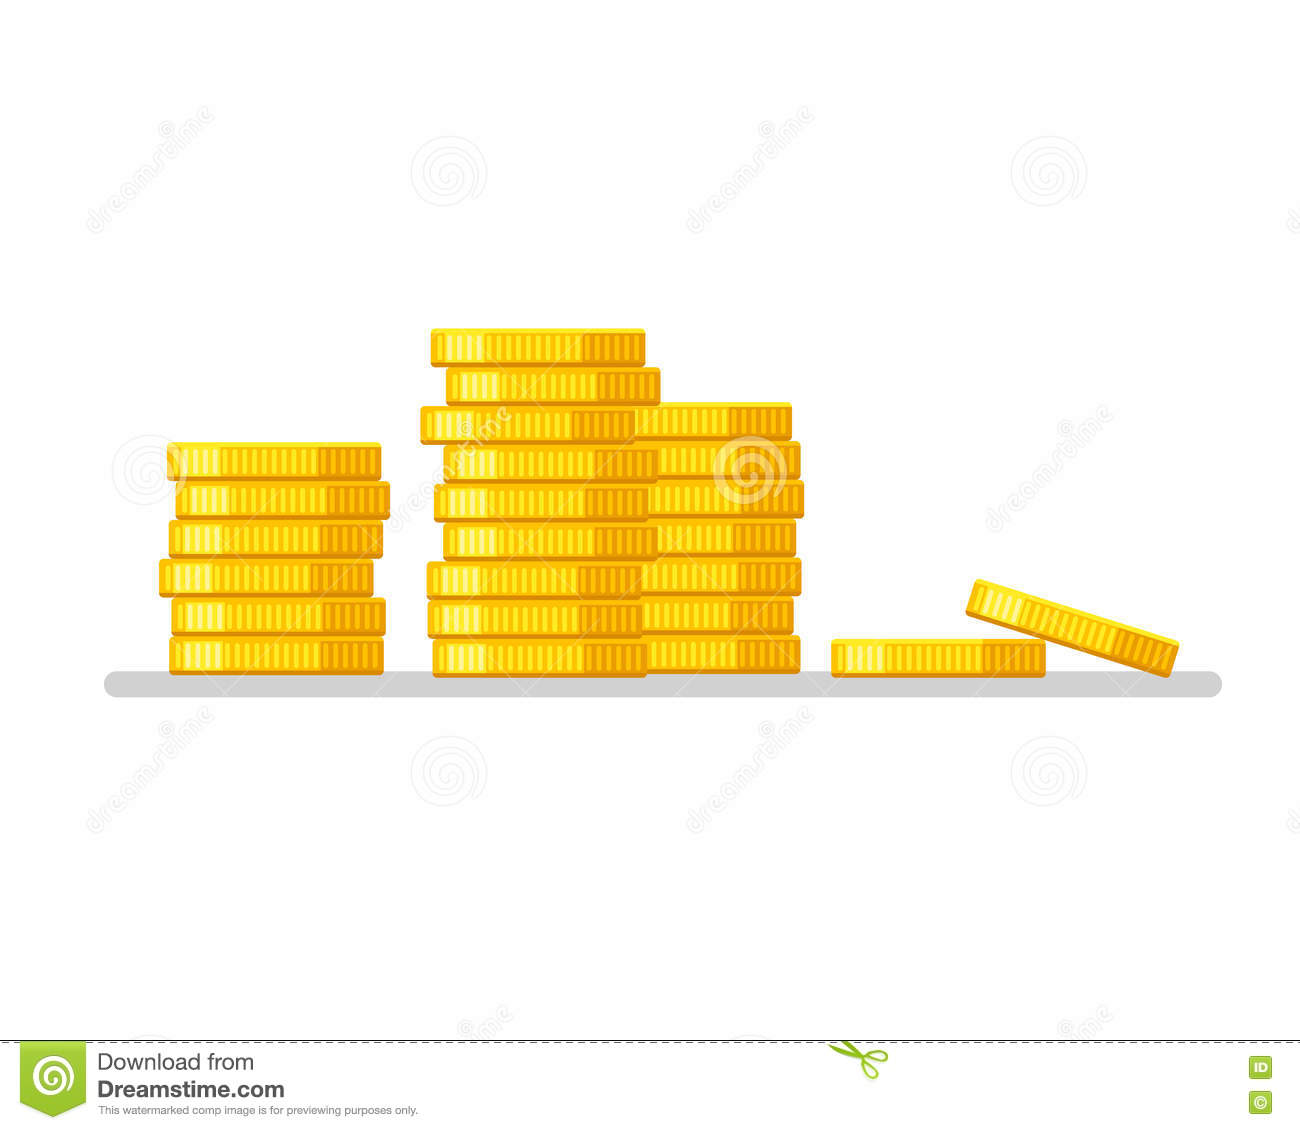 Coins stack. Gold money icon flat design illustration vector. Business concept.